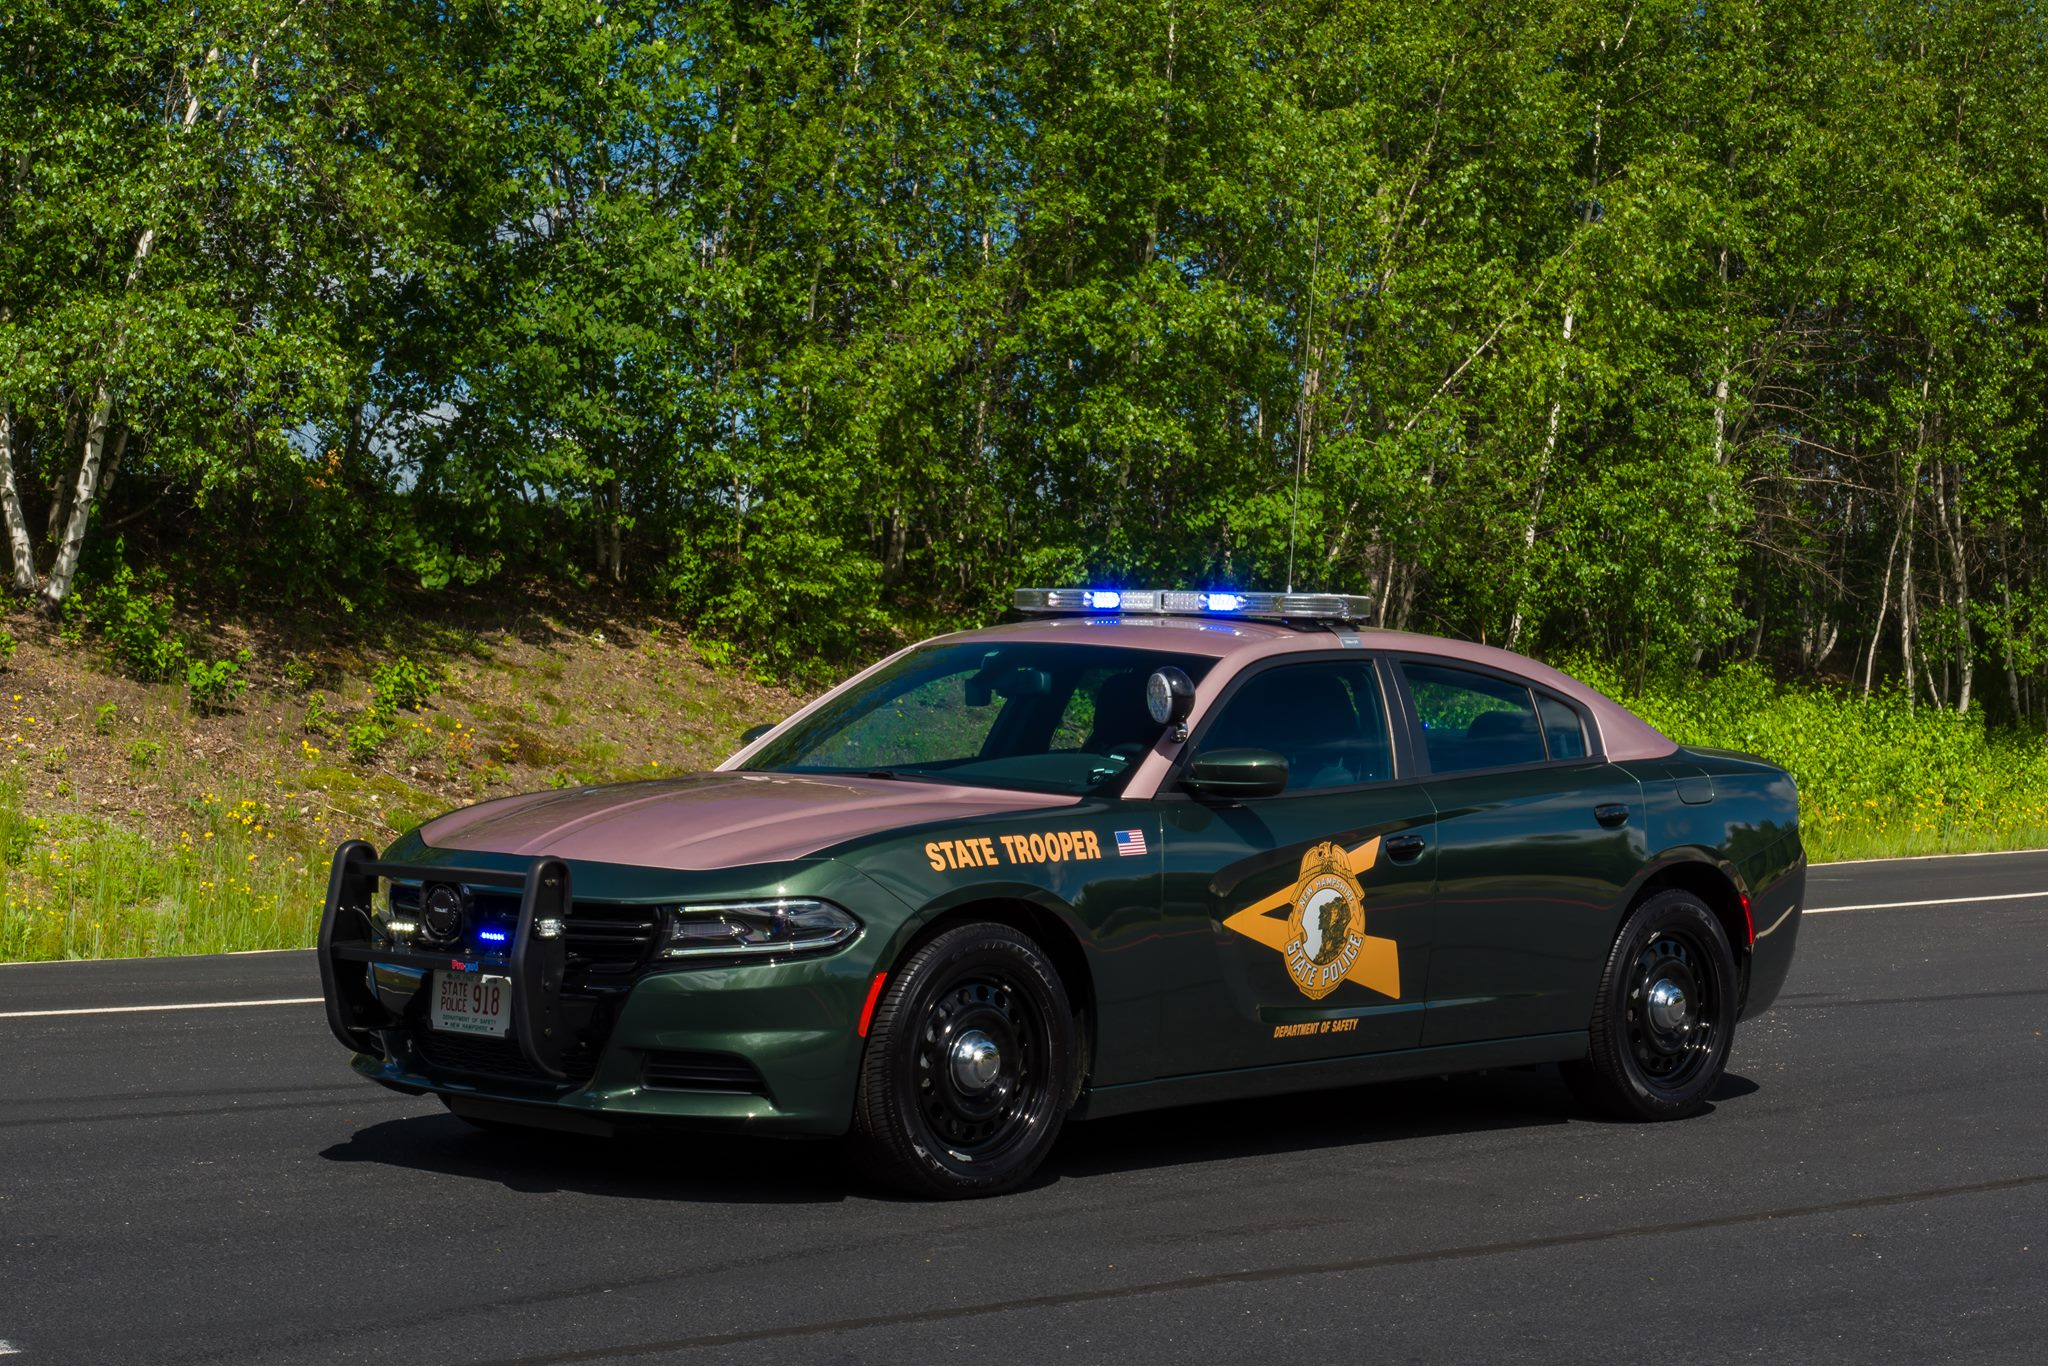 New Hampshire State Police. (American Association of State Troopers|Facebook)